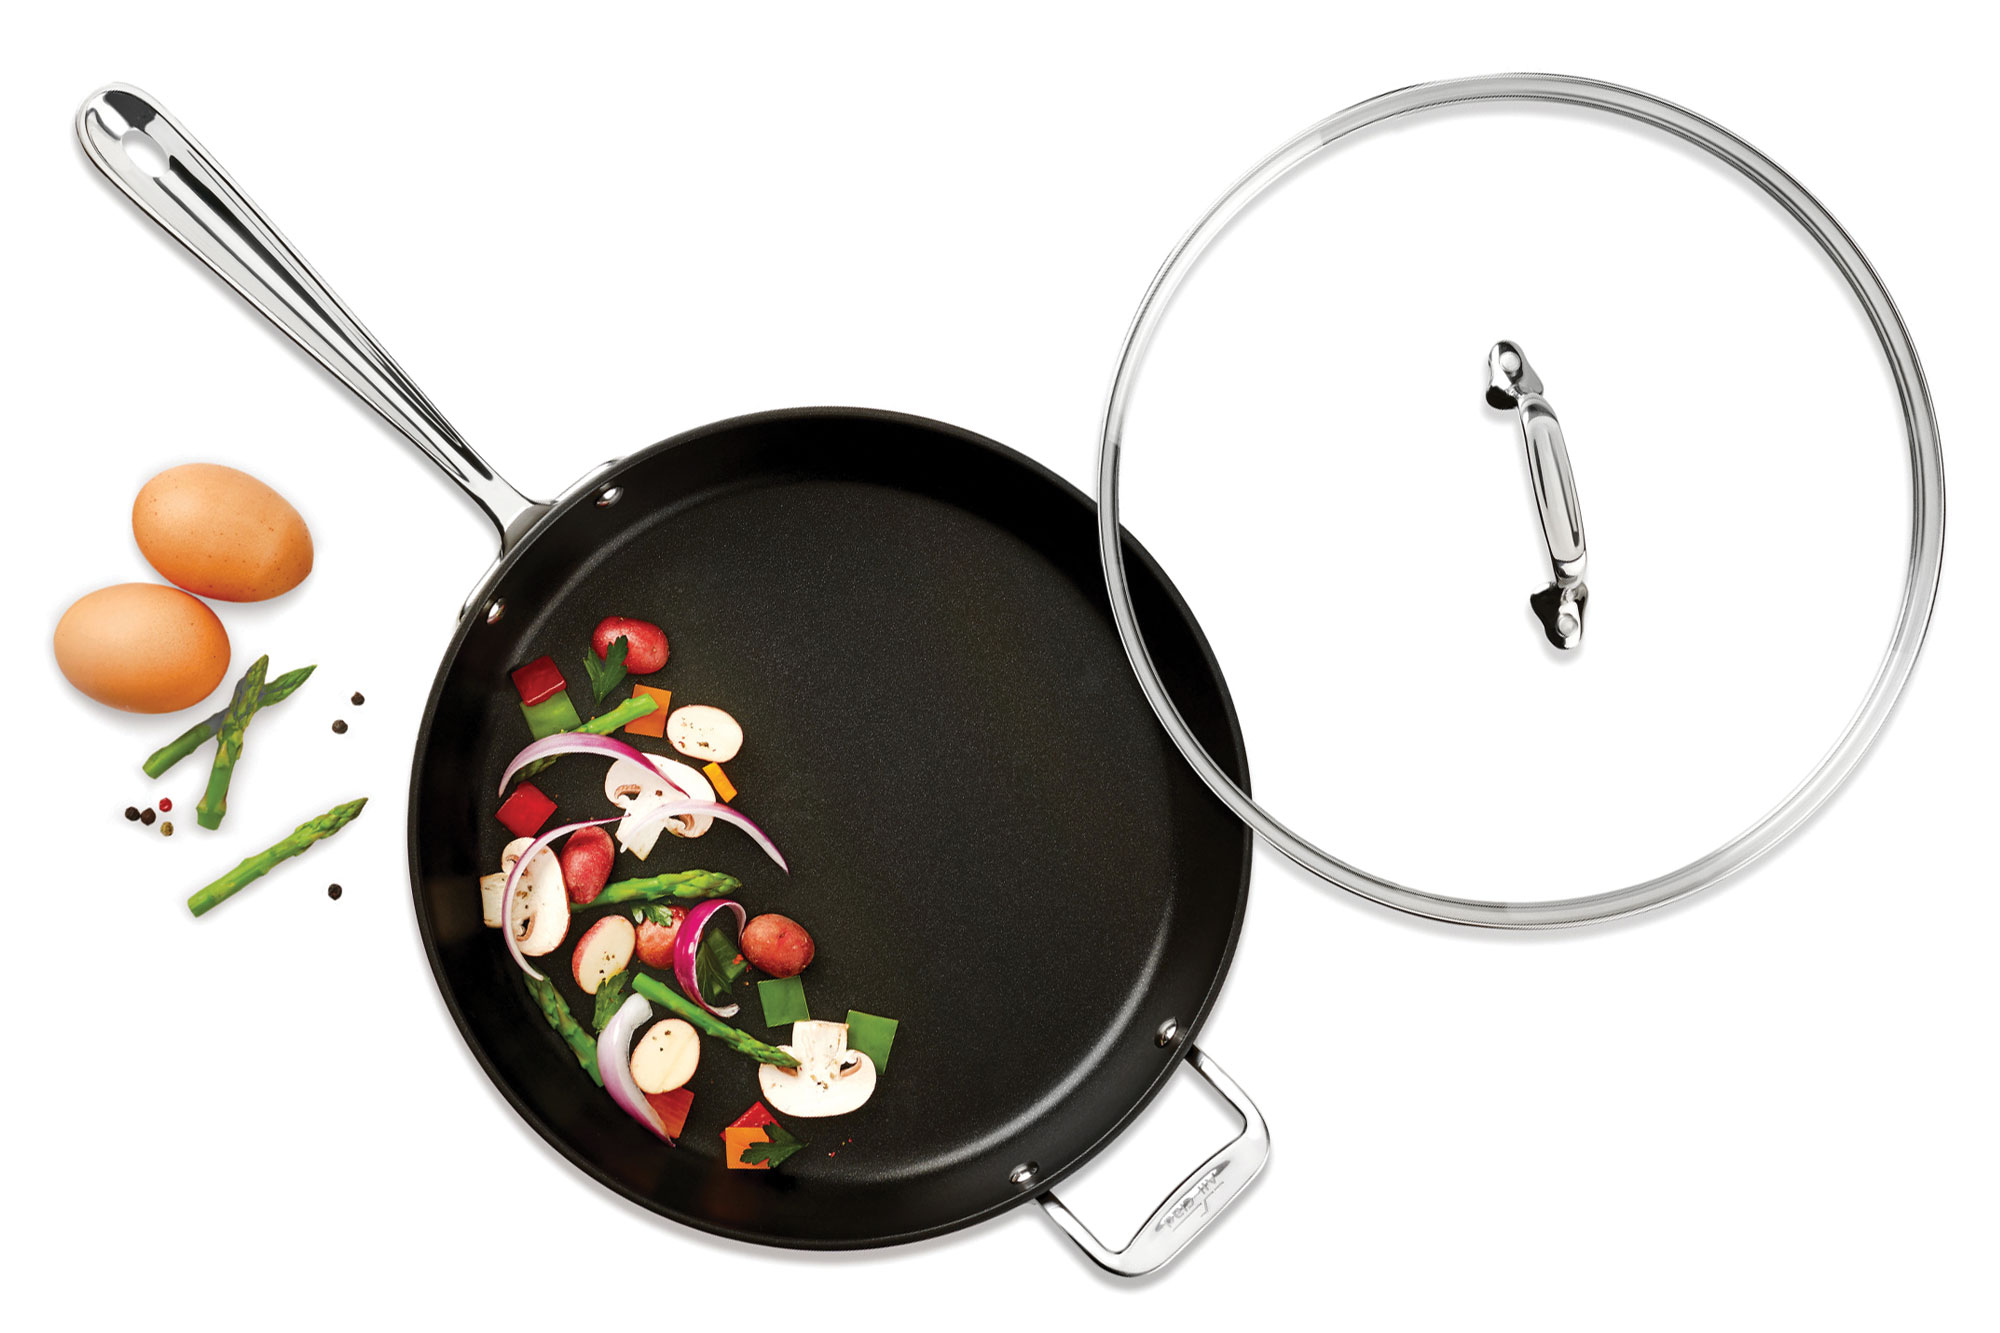 All Clad Ha1 Nonstick Skillet With Glass Lid 12 Inch